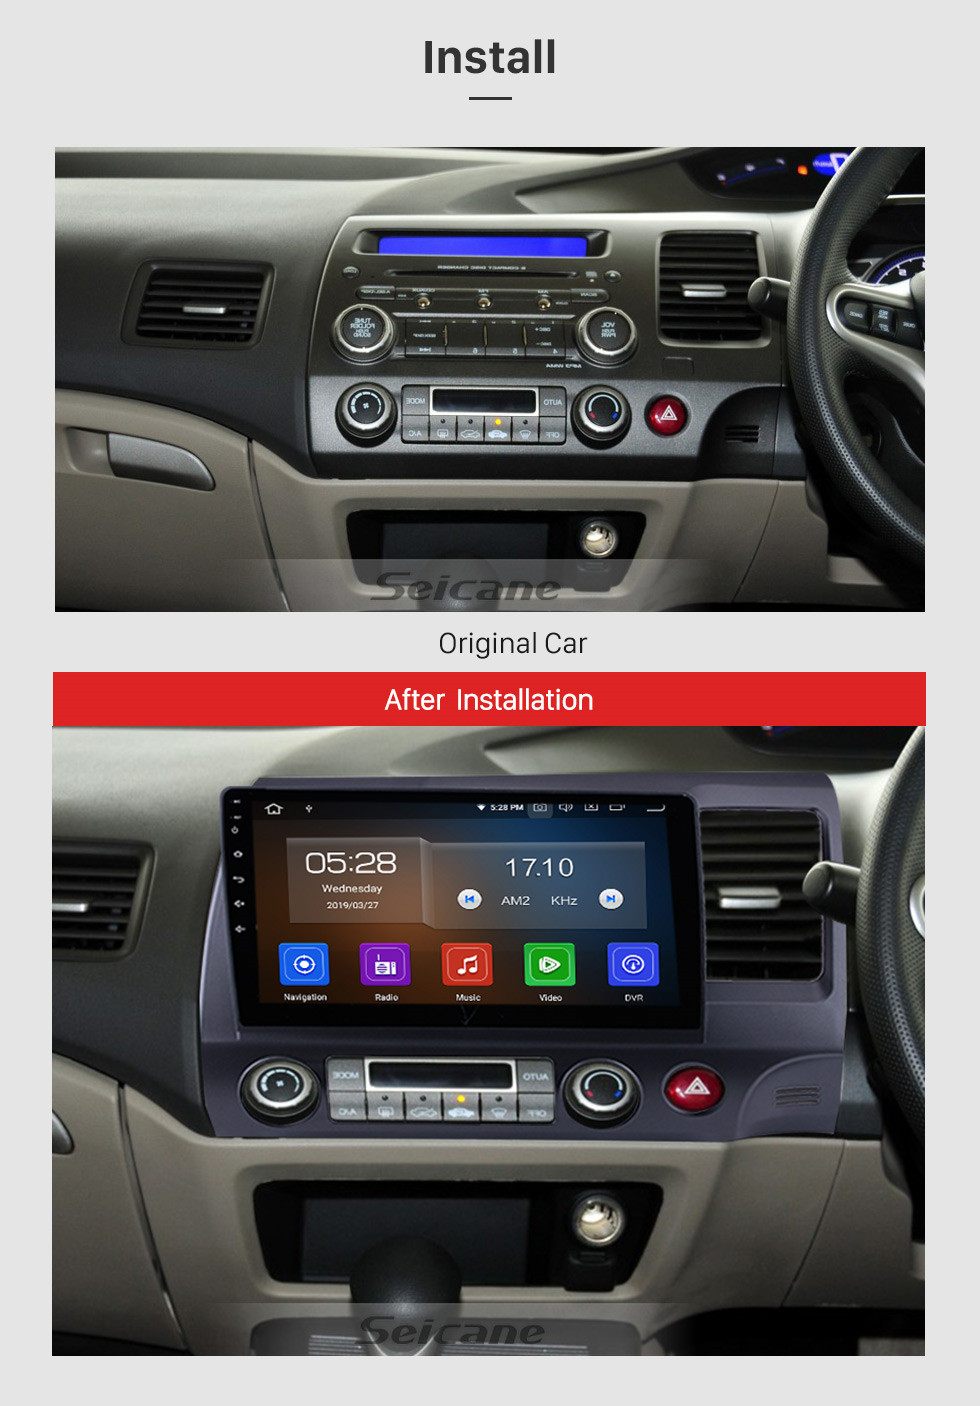 Seicane All-in-one 10.1 inch Android 10.0 Radio Removal for 2006-2011 Honda Civic RHD GPS Head Unit 1024*600 Multi-touch Capacitive Screen Bluetooth Music MP3 Mirror Link OBD2 AUX 3G WiFi HD 1080P